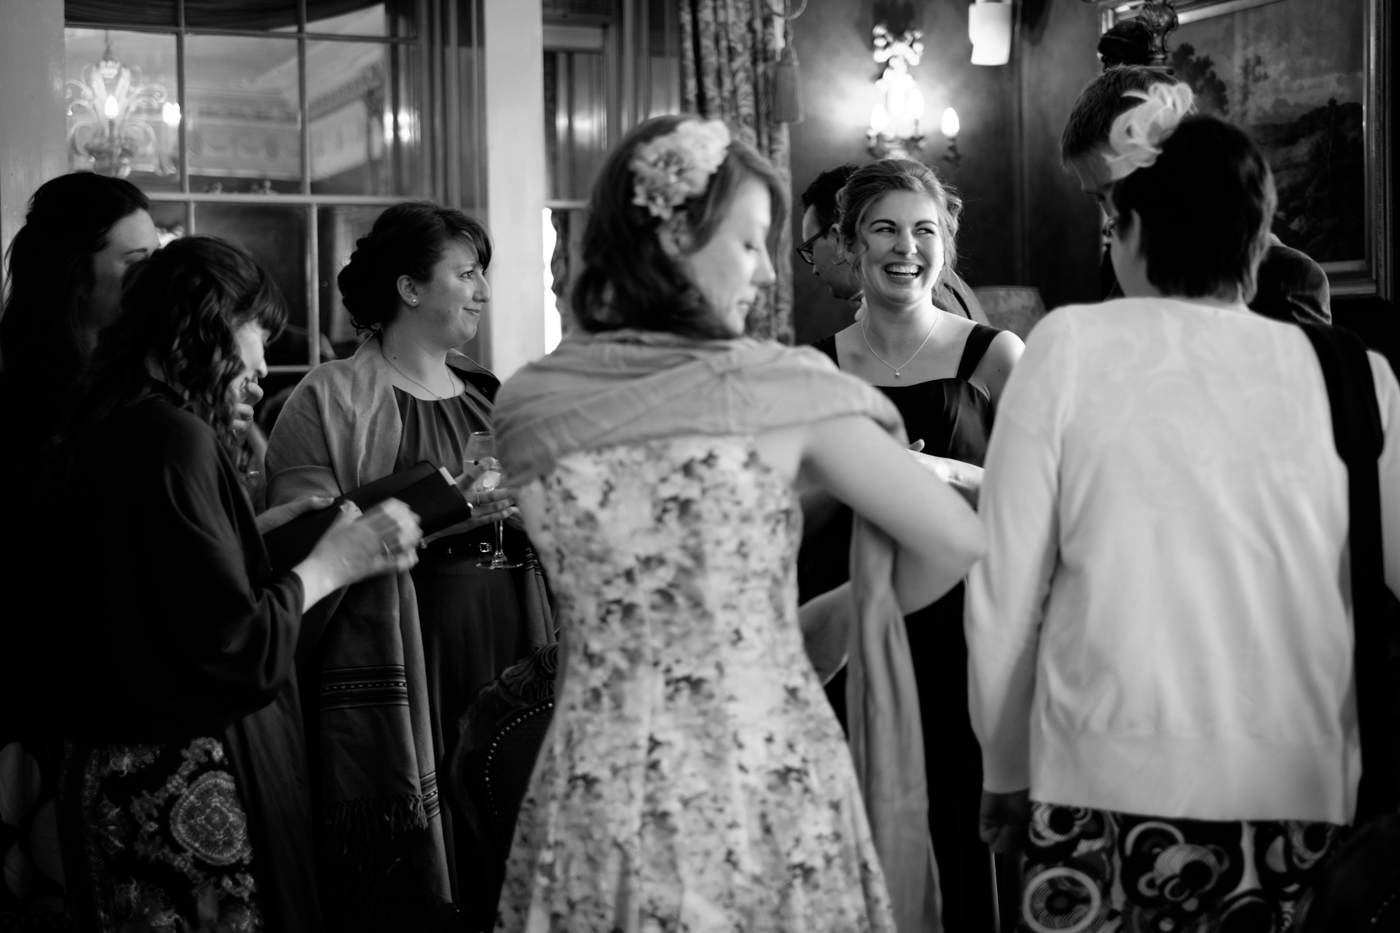 The bridesmaid and friends catching up before the ceremony, caught the smile love moments like these.